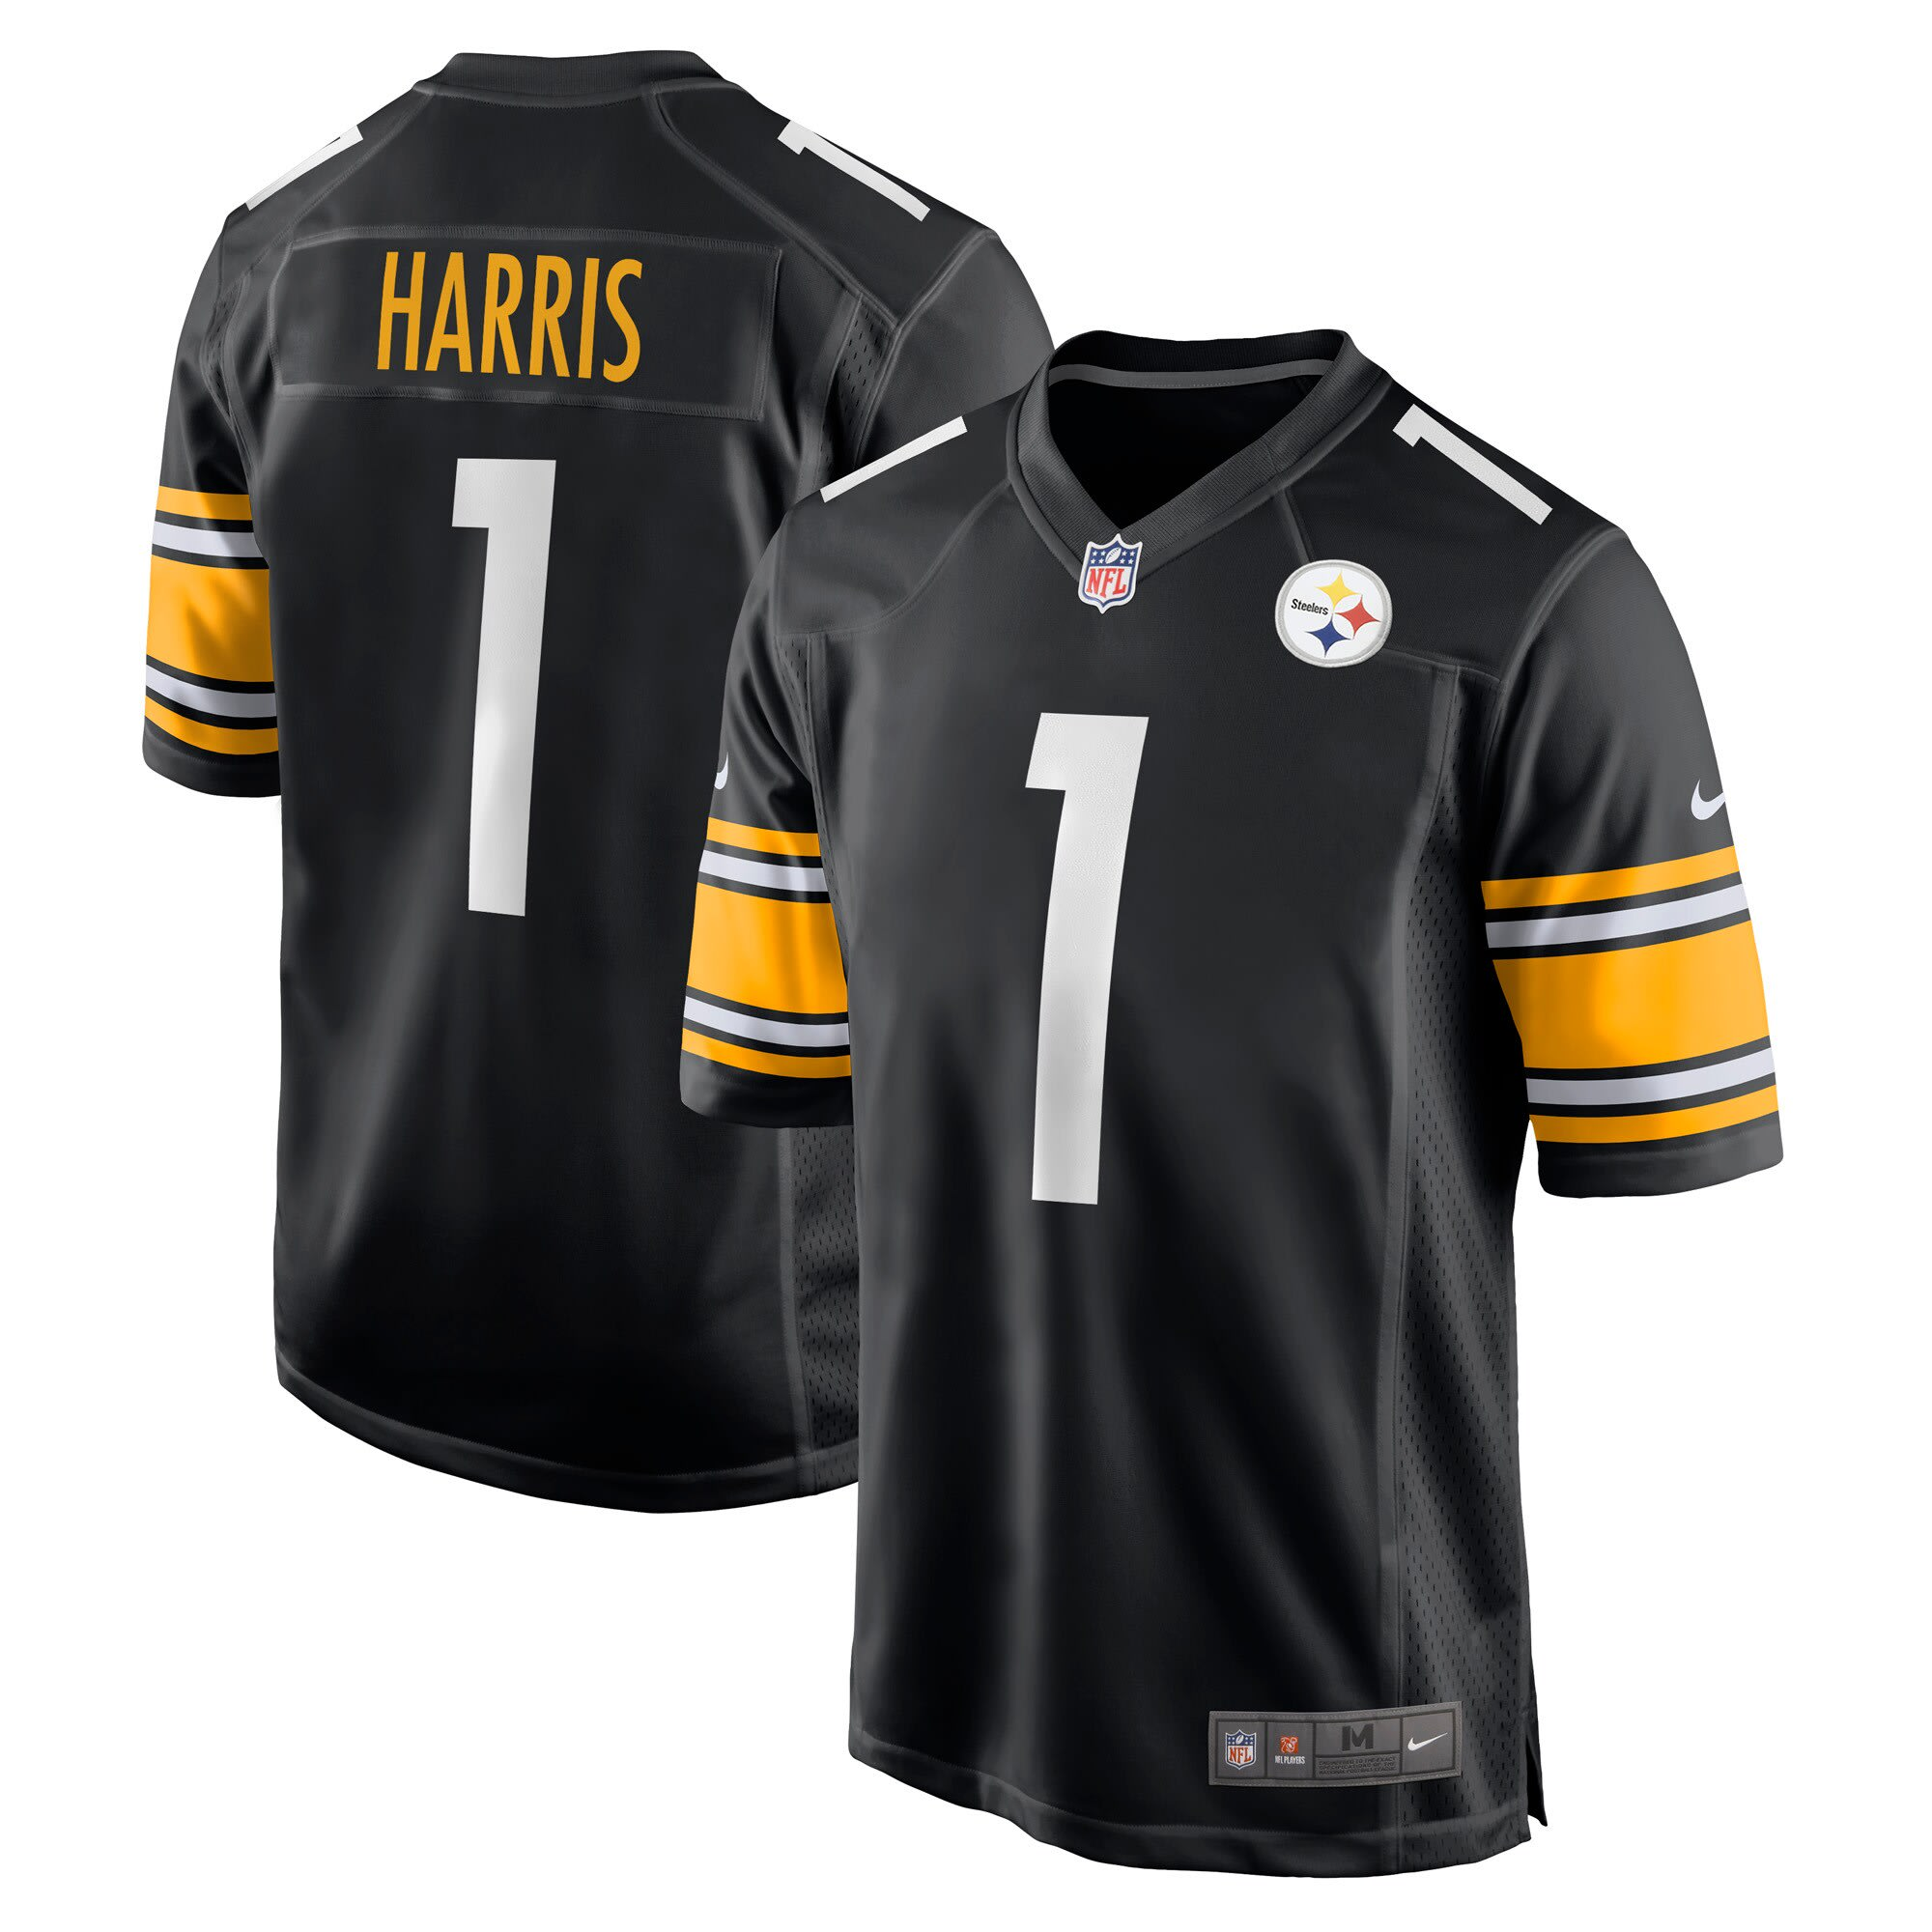 Pittsburgh Steelers: Get your official Najee Harris gear now